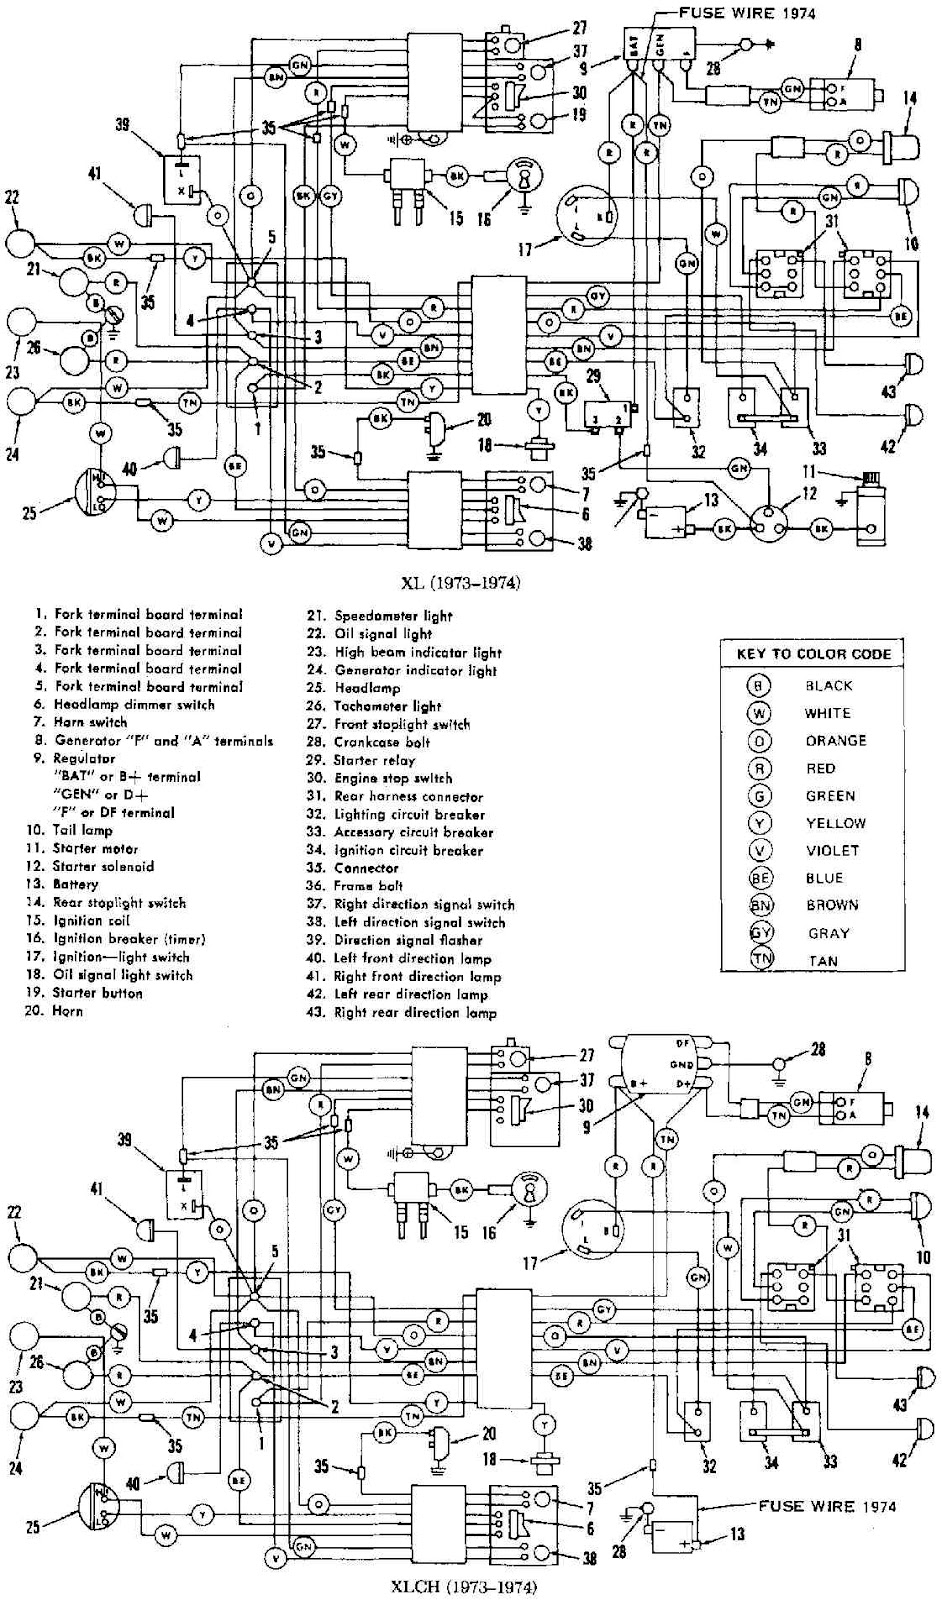 small resolution of 1974 ironhead wiring diagram images gallery harley davidson xl xlch 1973 1974 motorcycle electrical